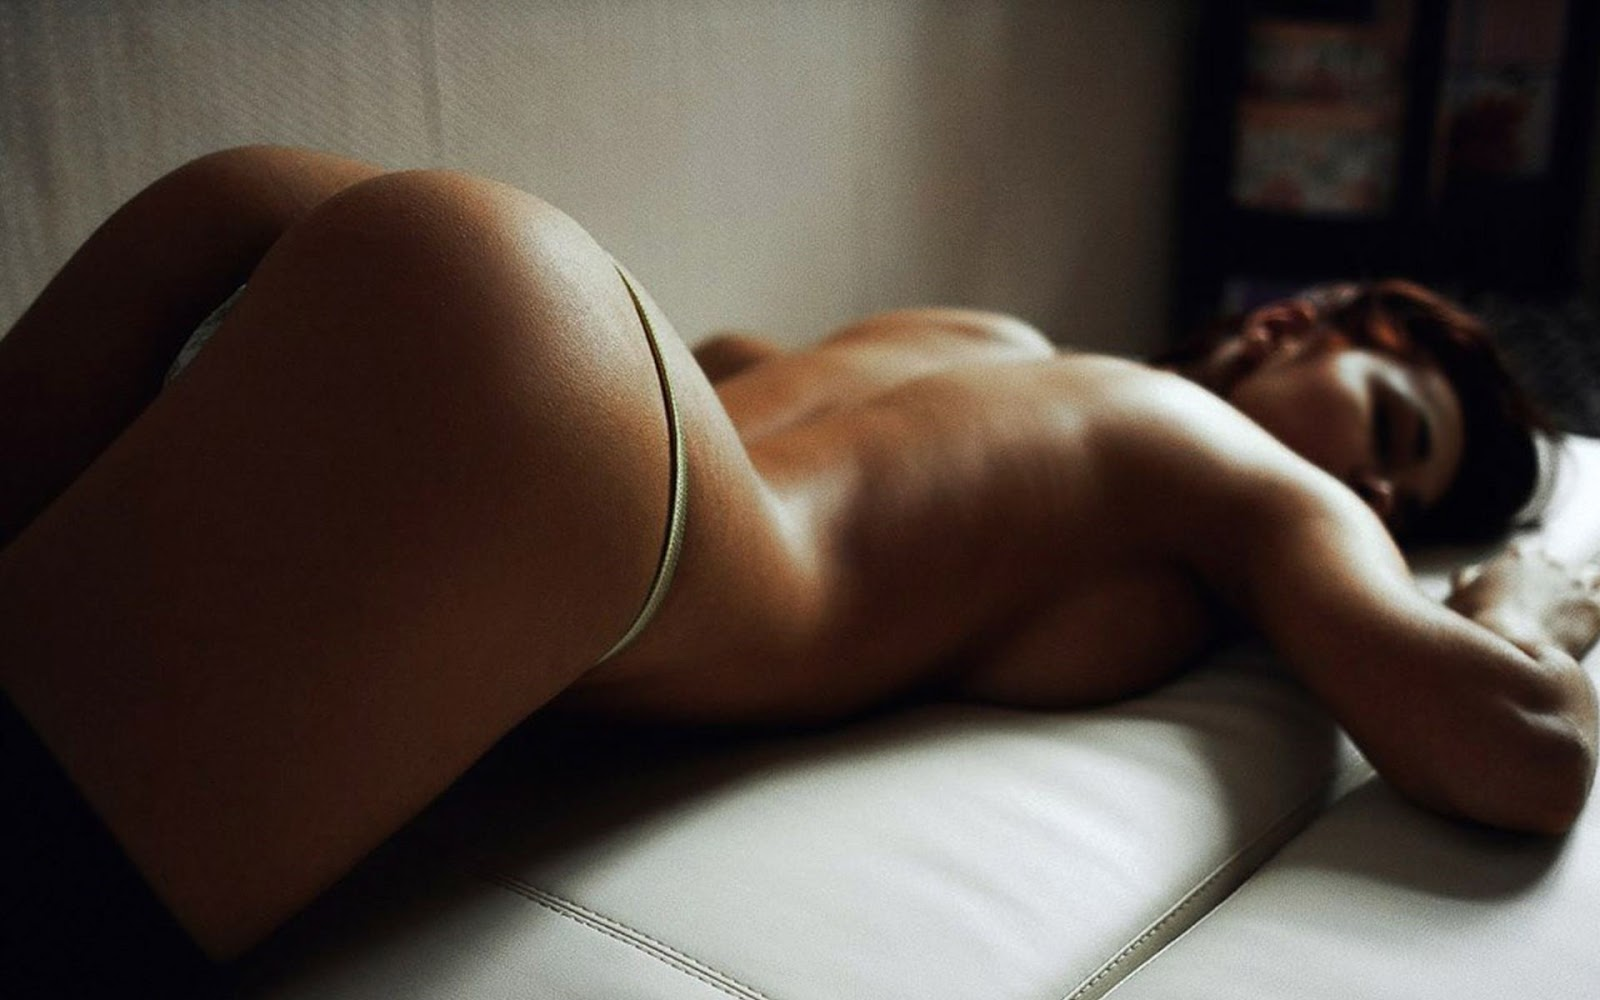 Topless sexy perfect ass naked girl